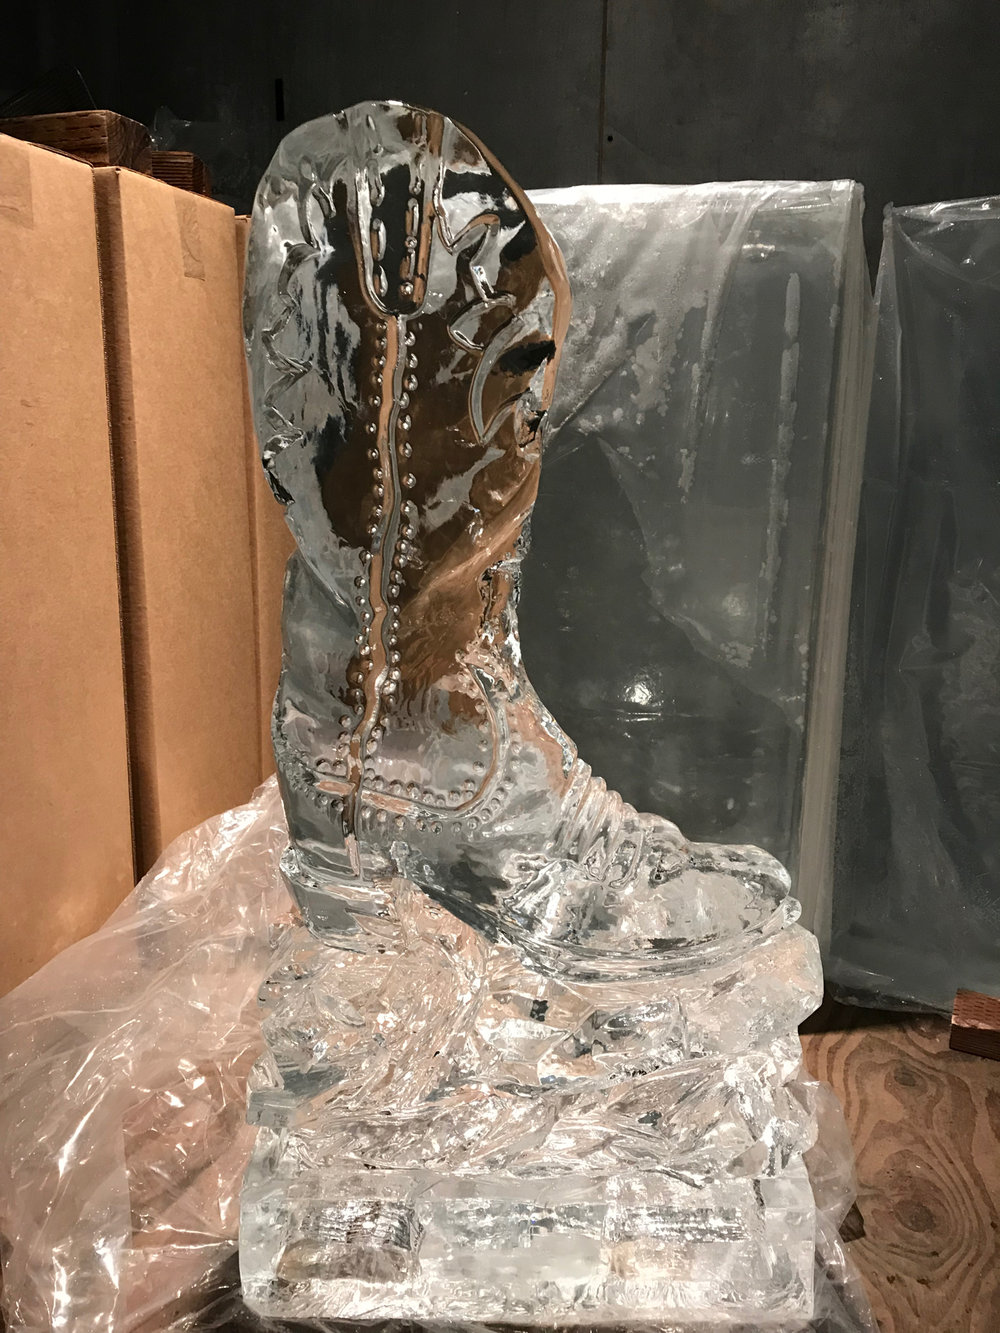 Laces, boot straps, and the natural contours of a leather boot are nicely reproduced to make this boot a true work of ice art.